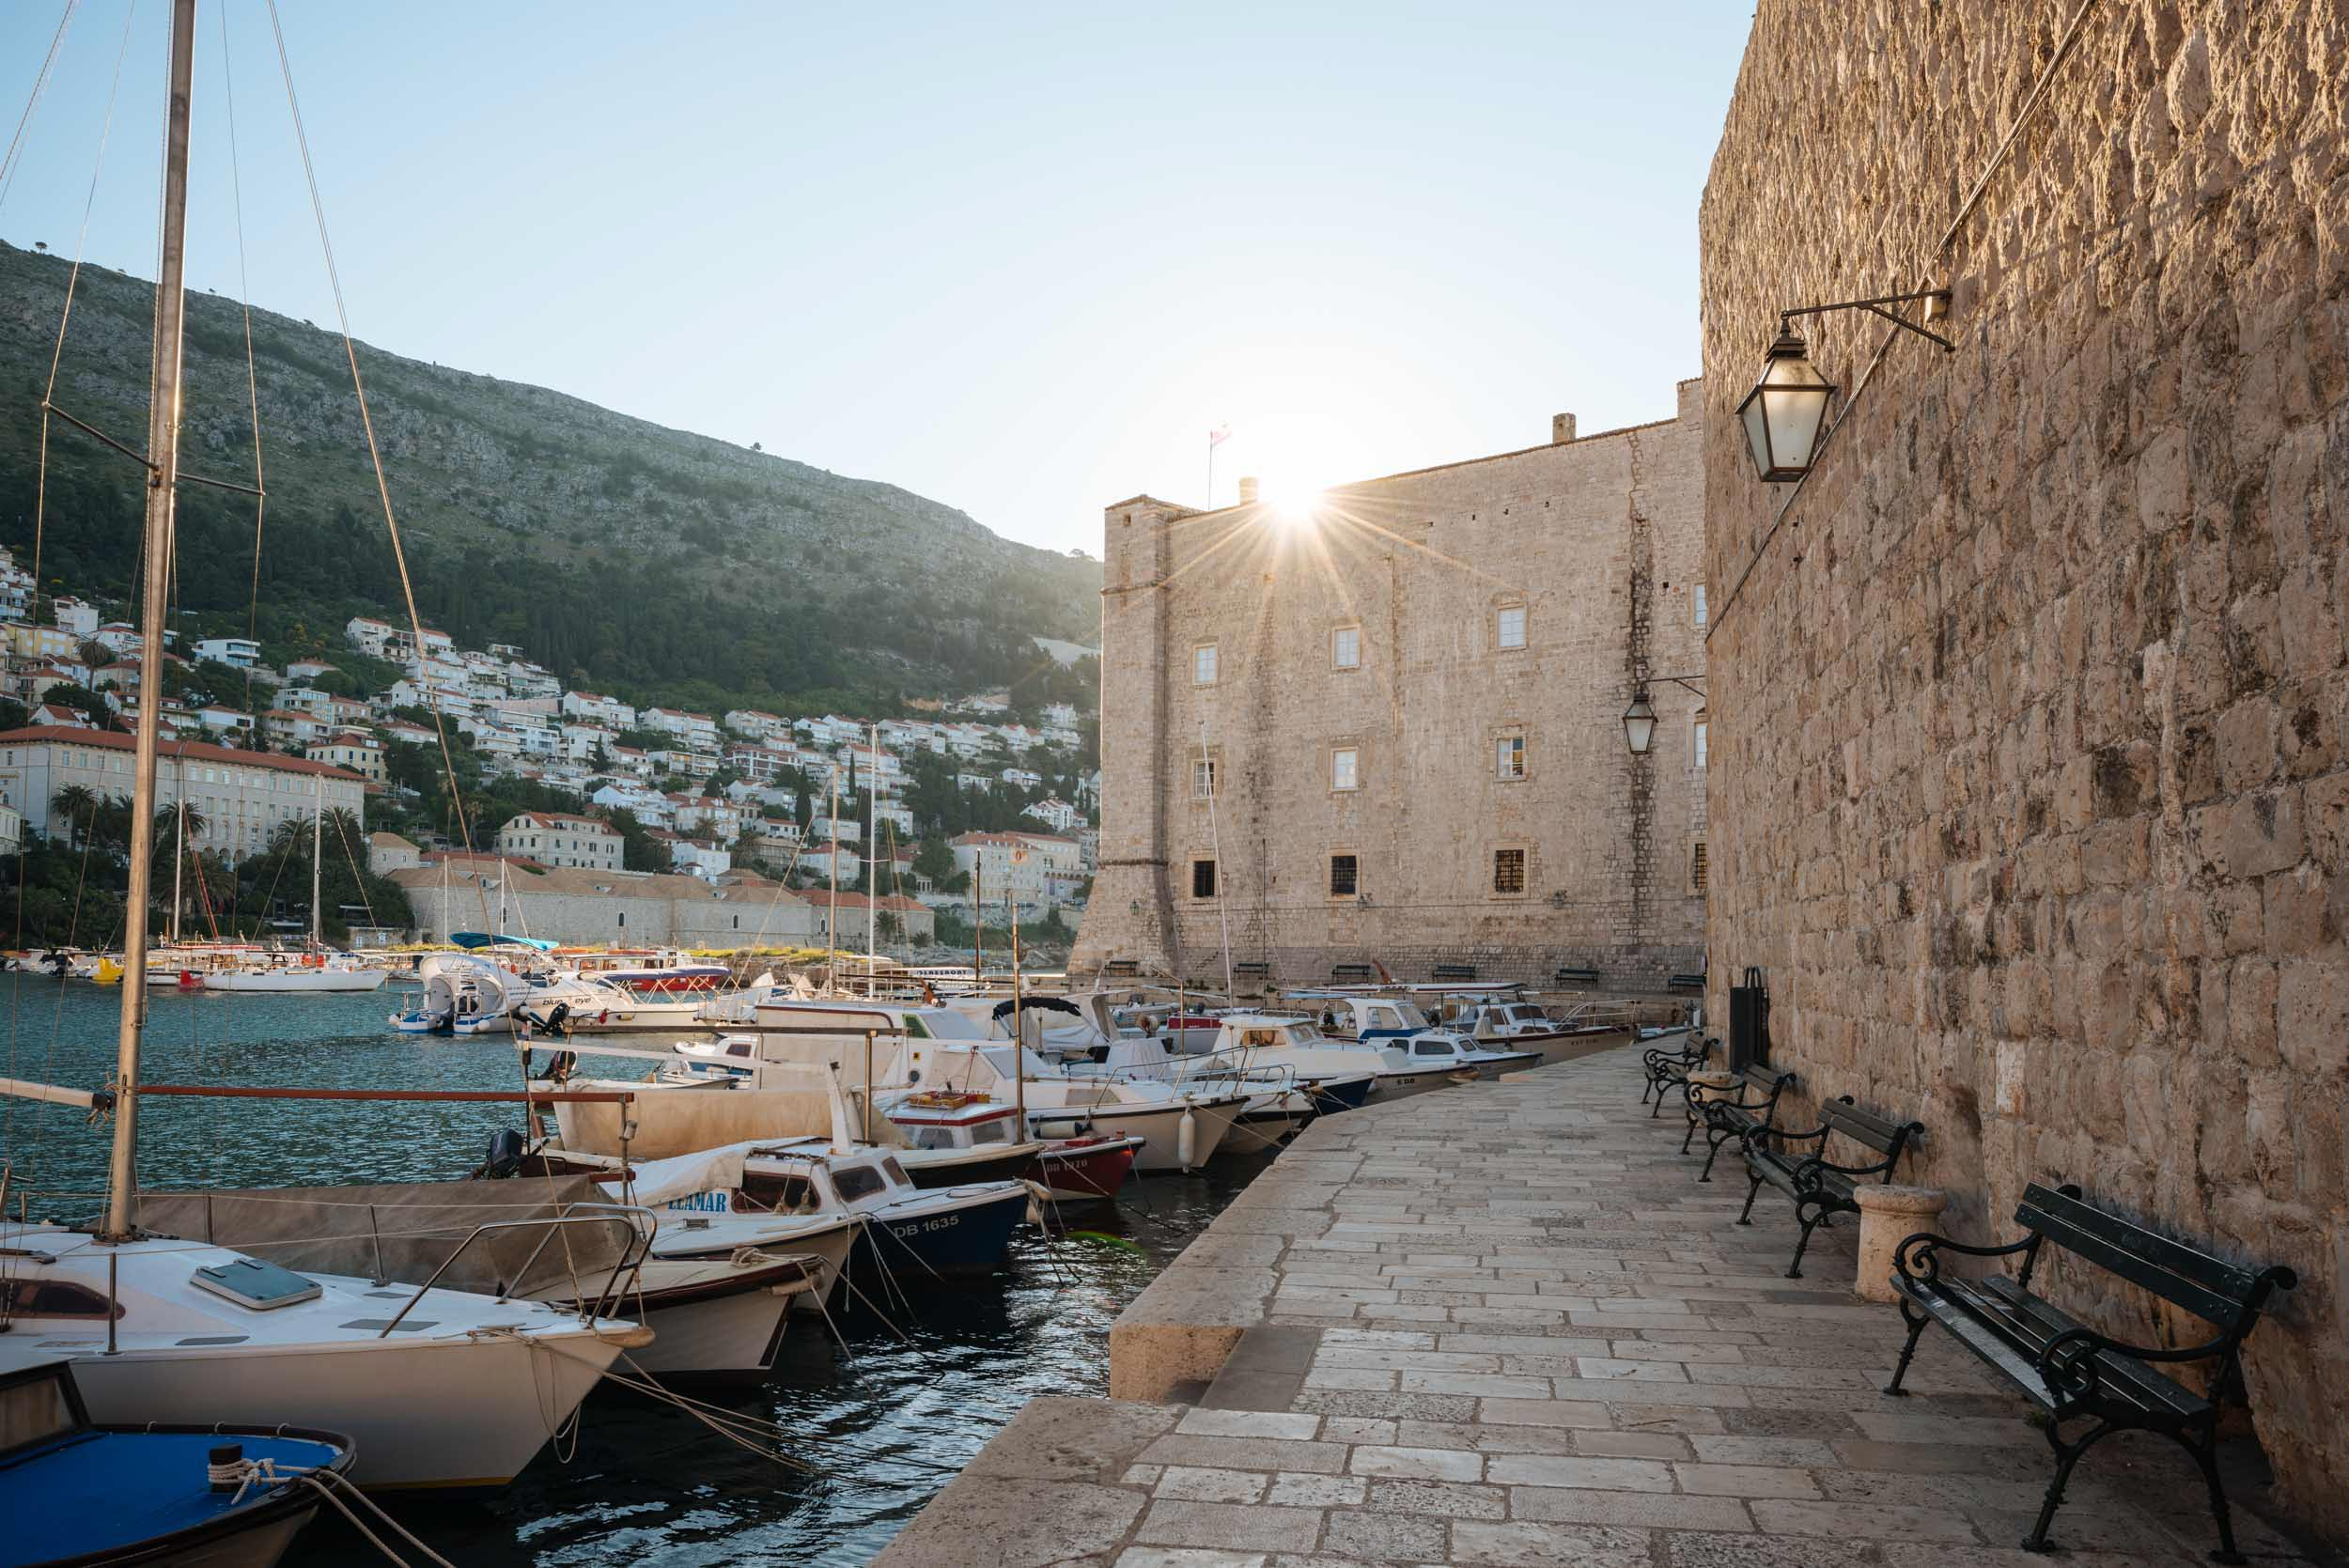 harbour-dawn-dubrovnik-croatia-balkan-travel-city-007